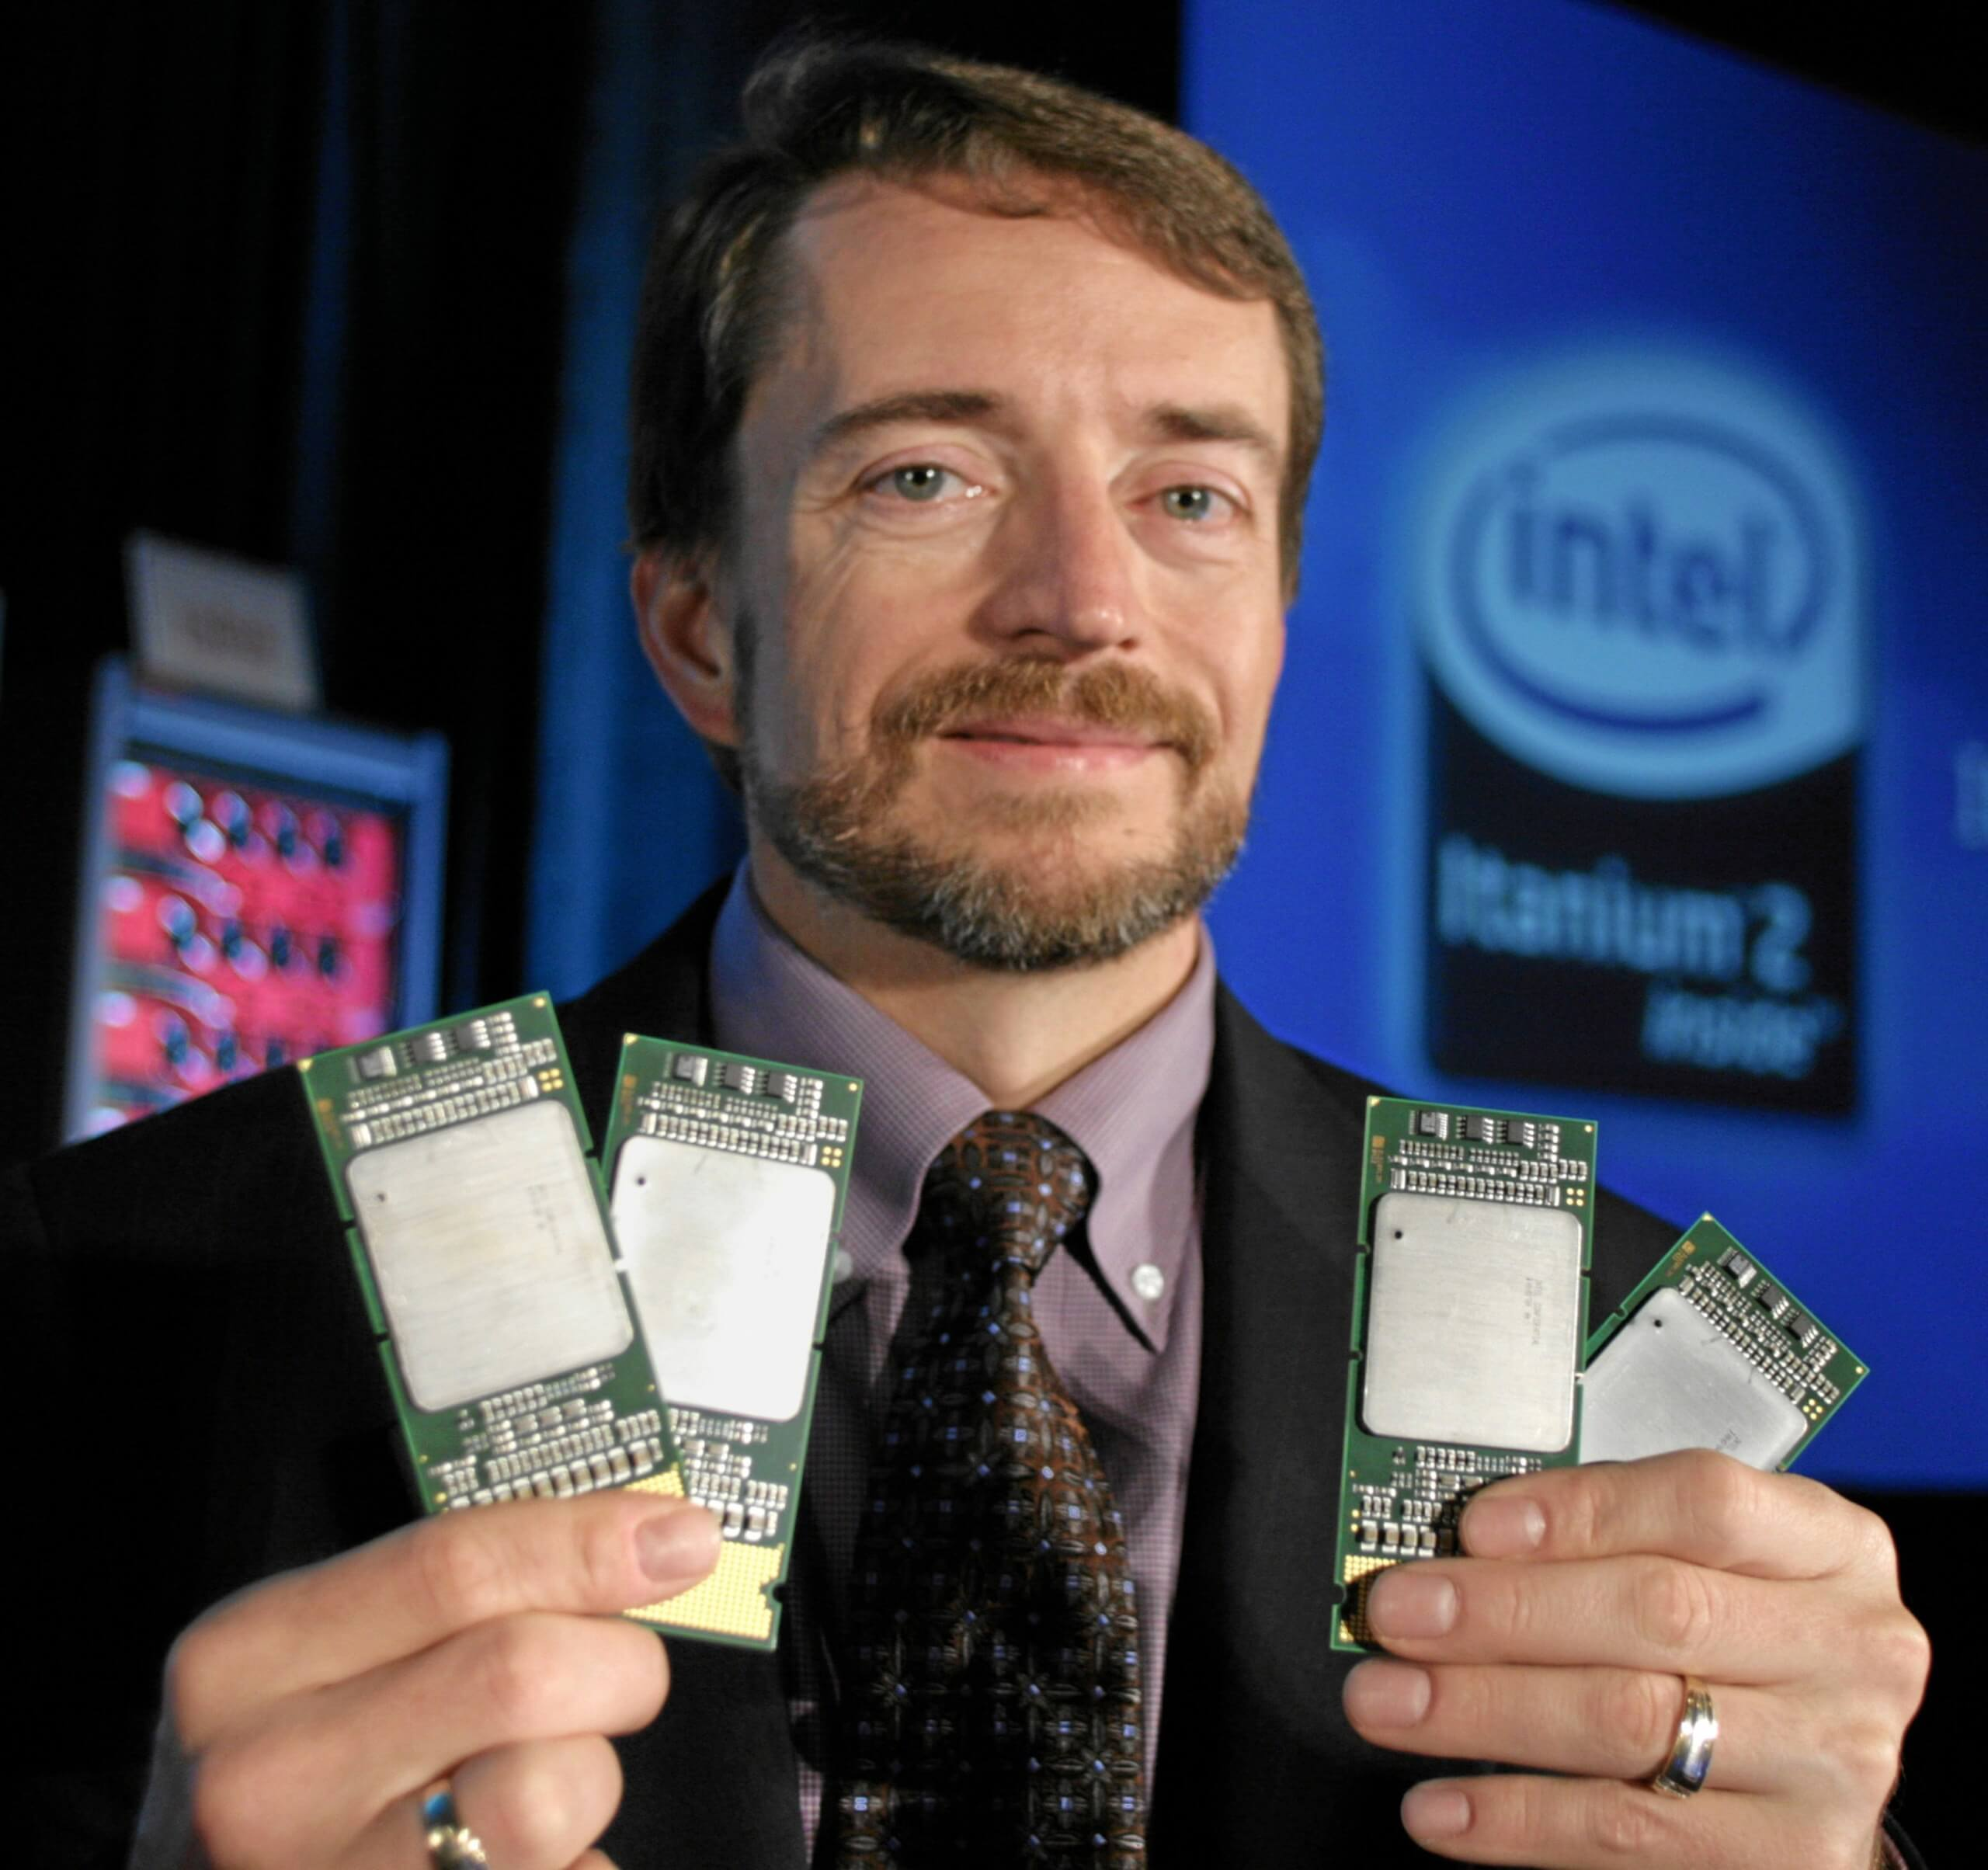 Intel finally quits making their Itanium server chips